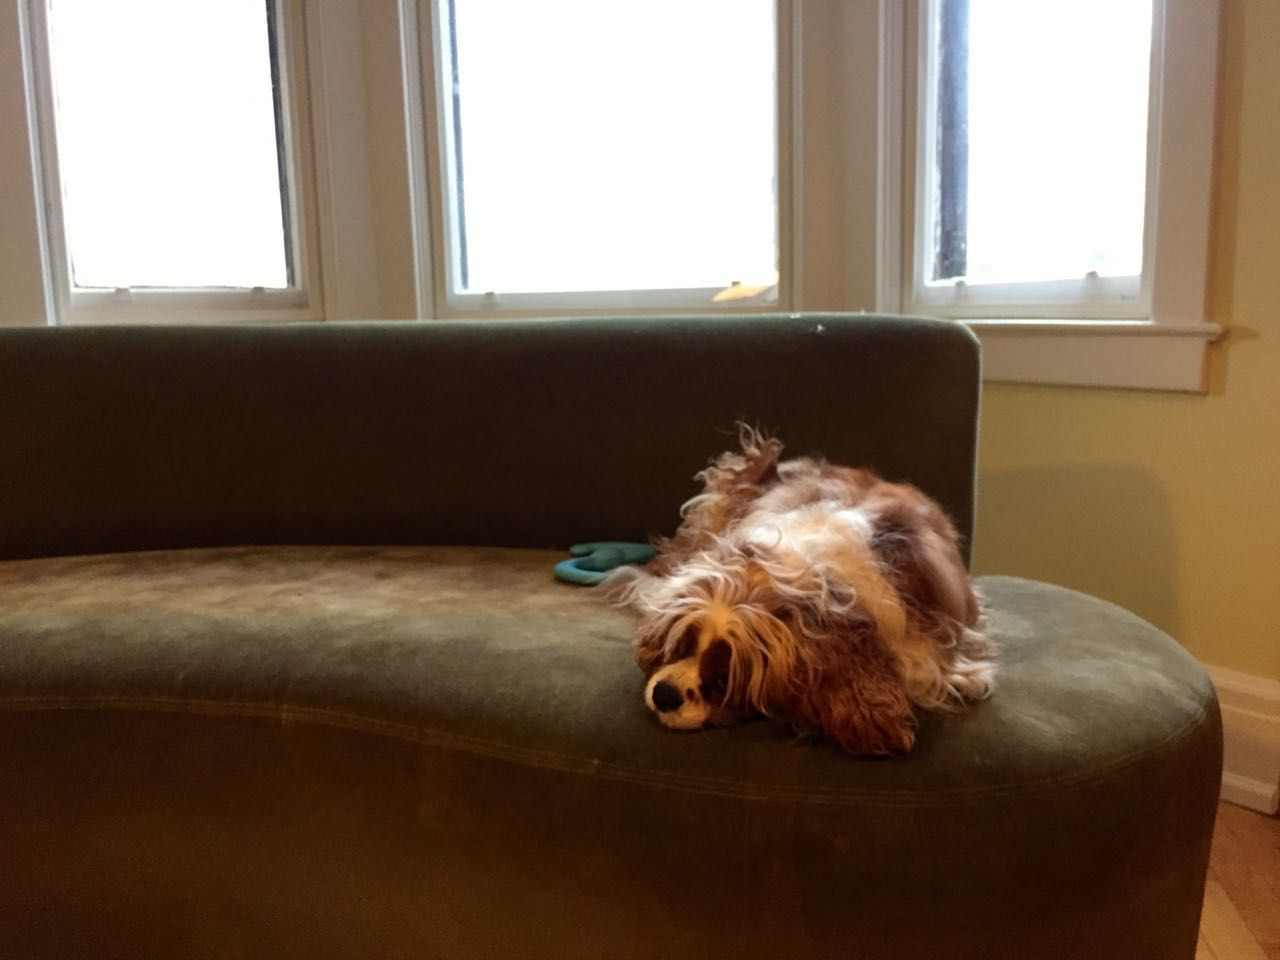 Fluffy dog sitting on a couch in front of three-paned window